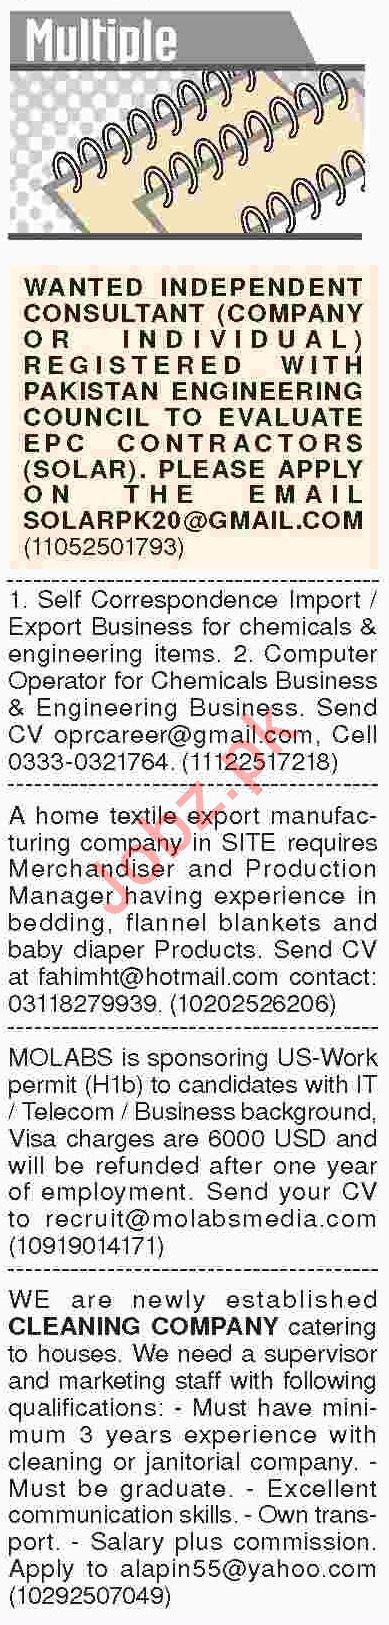 Dawn Sunday Classified Ads 13th Jan 2019 for Multiple Staff